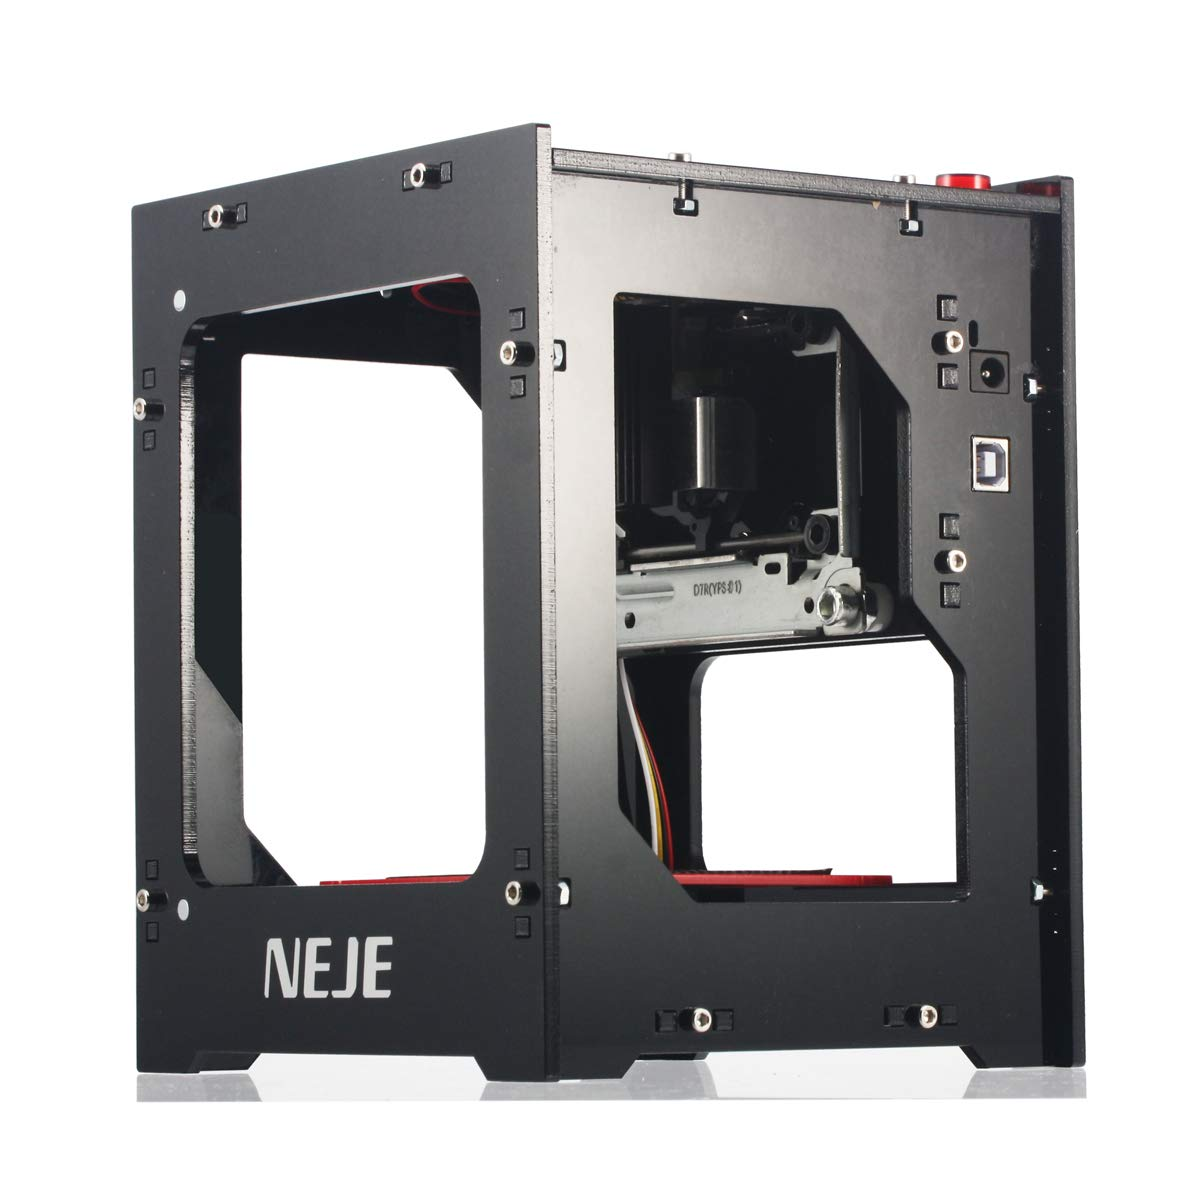 No Bluetooth NEJE DK-8-FKZ 1500mW High Speed Mini USB Laser Engraver Carver Automatic DIY Print Engraving Carving Machine Off-line Operation with Battery